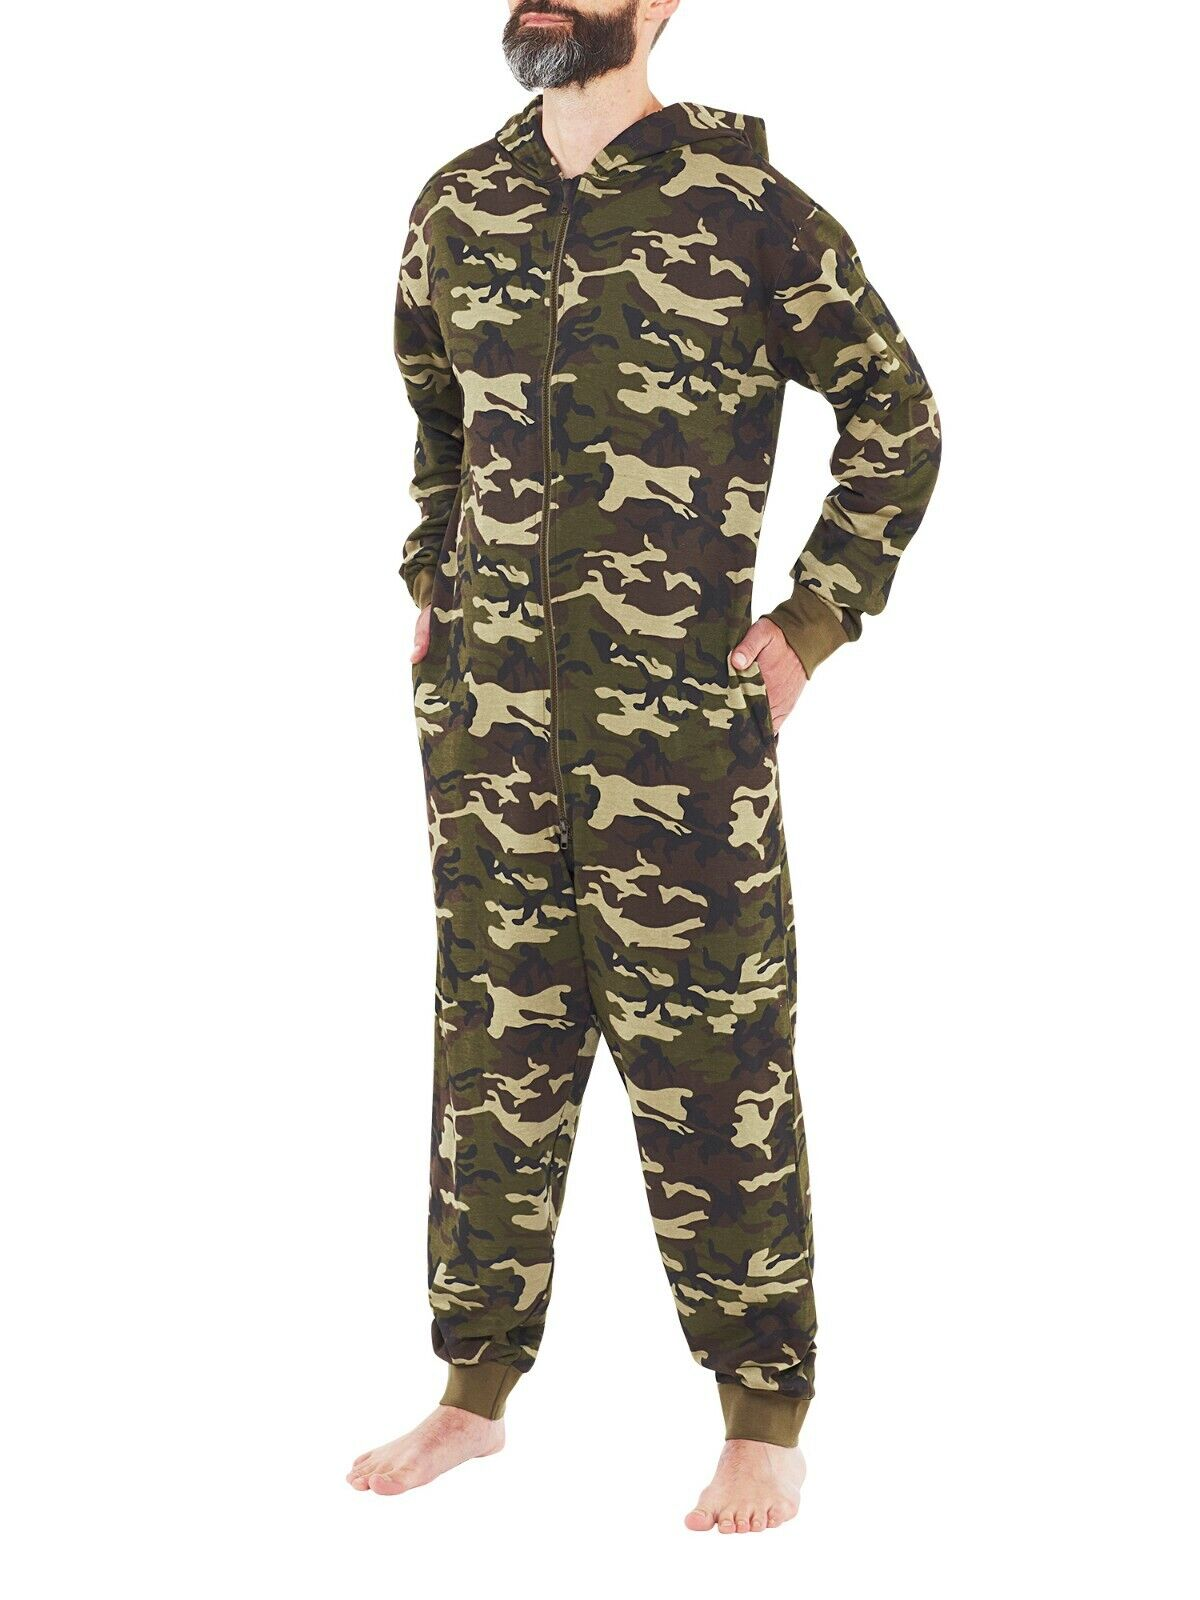 Mens OAK TREE Camo Jump SUIT cotton Mens hunters warm thermal all in ONE ONEISE